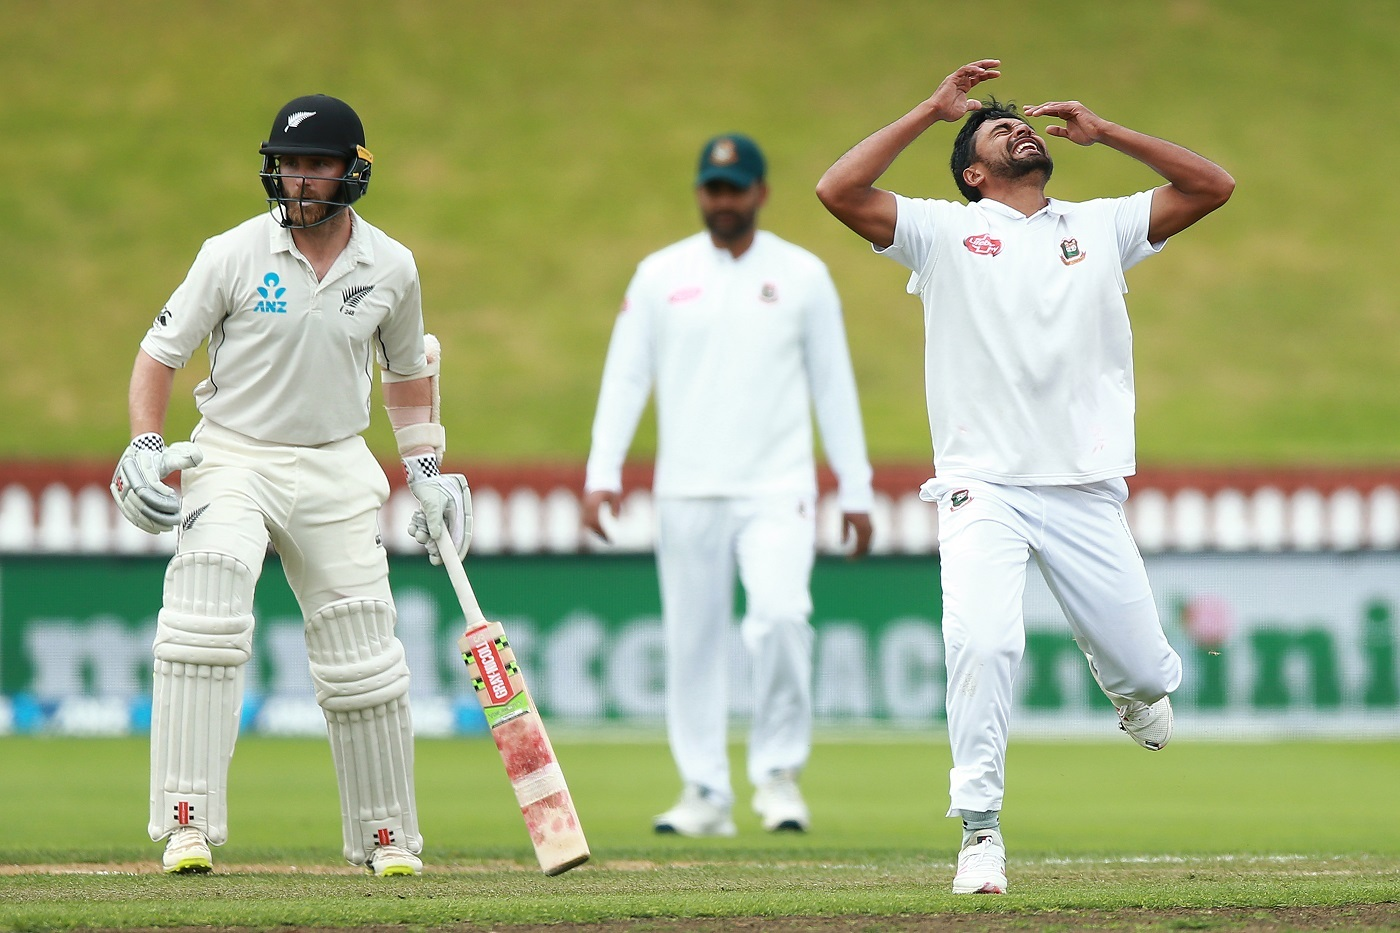 Bangladesh cricket tour of New Zealand delayed by one week